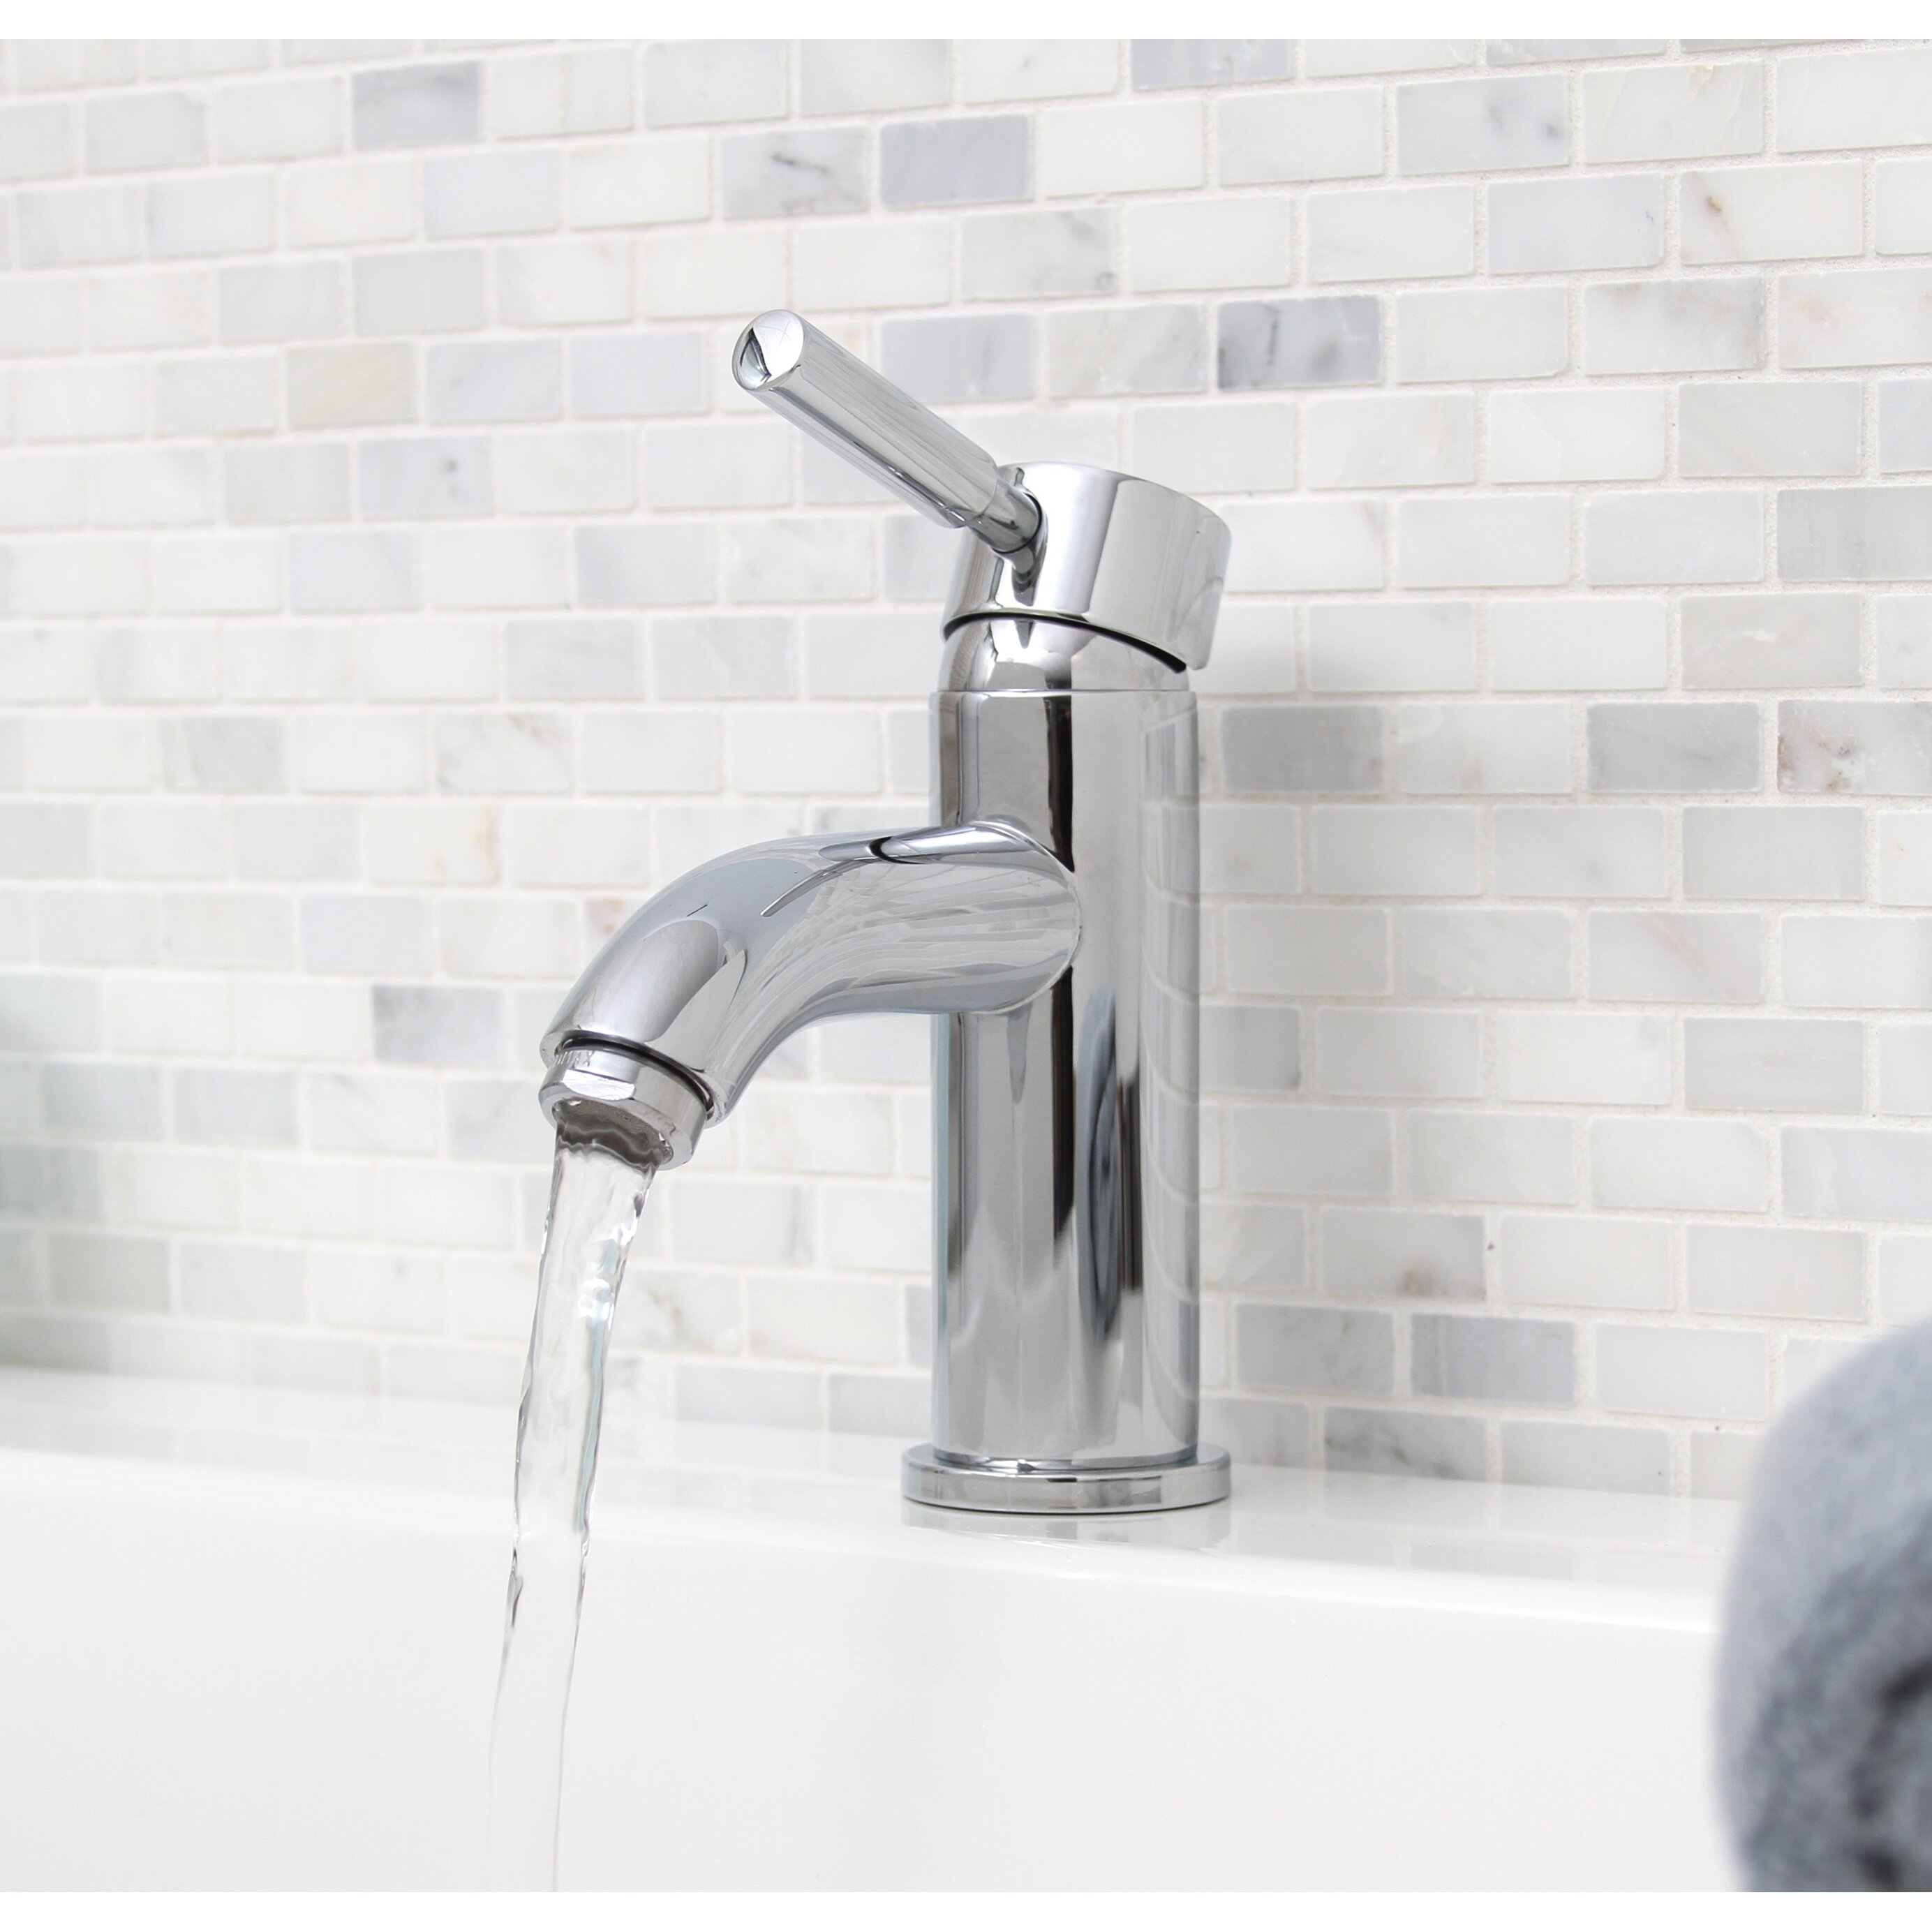 Bathtub Single Handle Faucet : Premier Faucet Essen Single Handle Bathroom Faucet & Reviews Wayfair